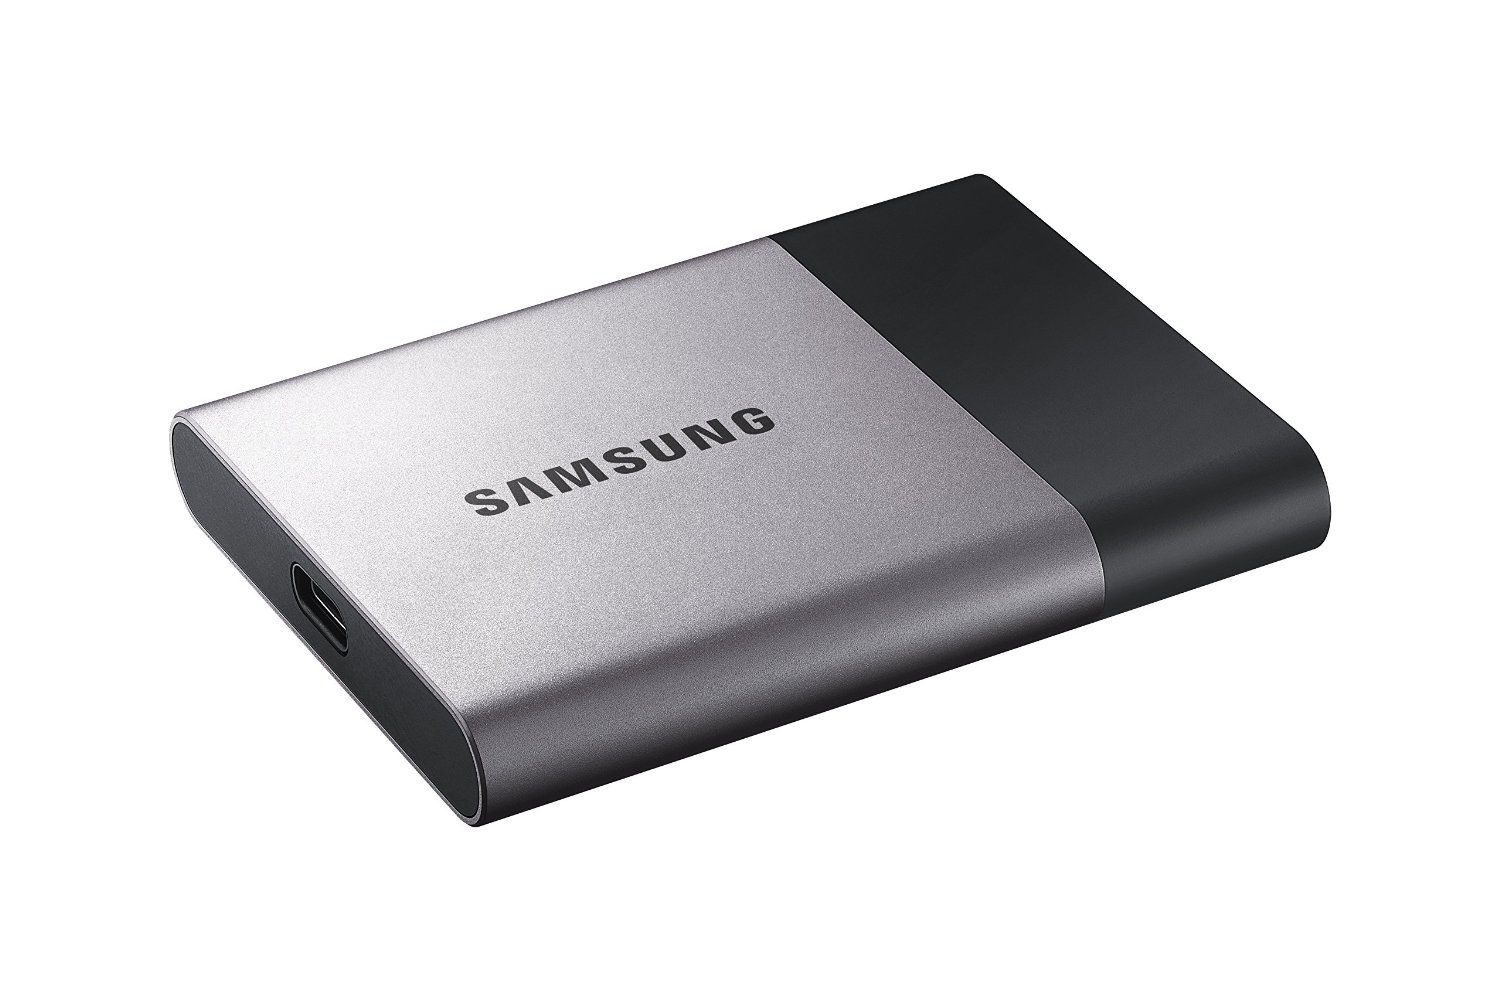 Samsung T3 Portable SSD - 500GB - USB 3.1 External SSD (MU-PT500B/AM) (Renewed)